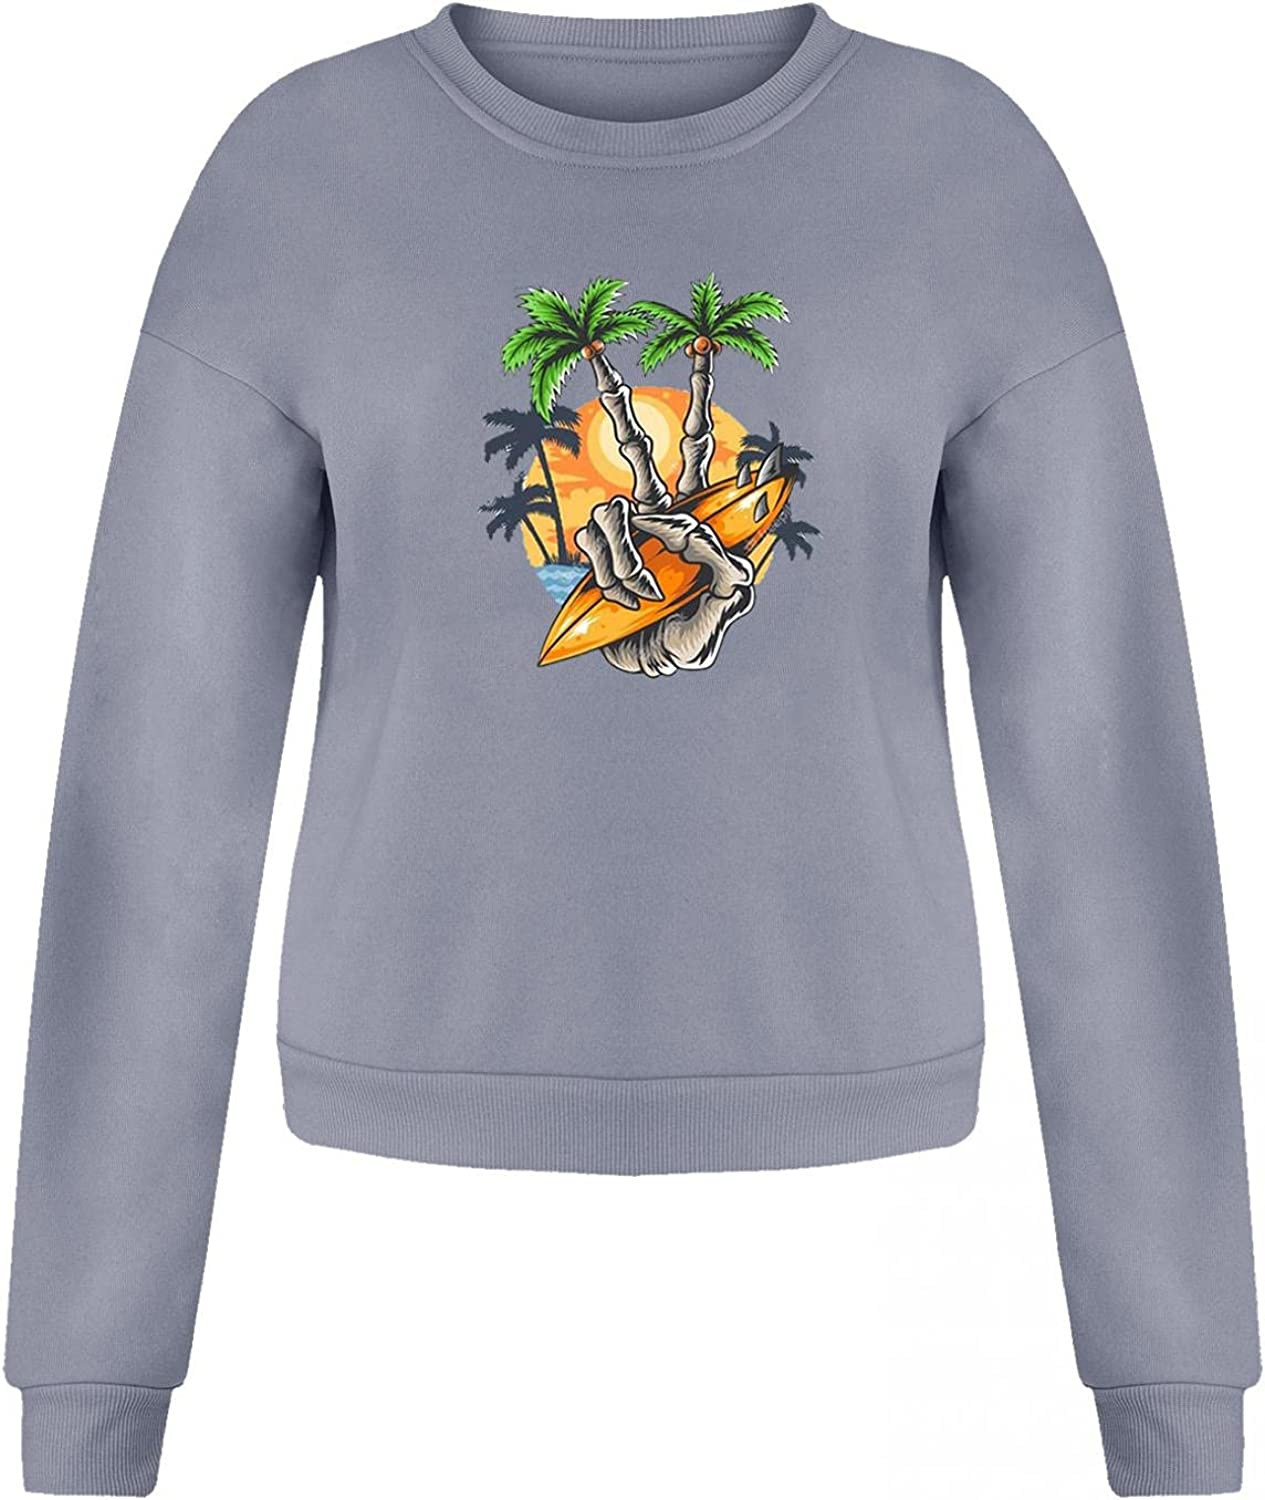 Jaqqra Halloween Sweatshirts for Women Casual Long sleeve Vintage Printed Fesitival Sweaters Lightweight Pullover Tops